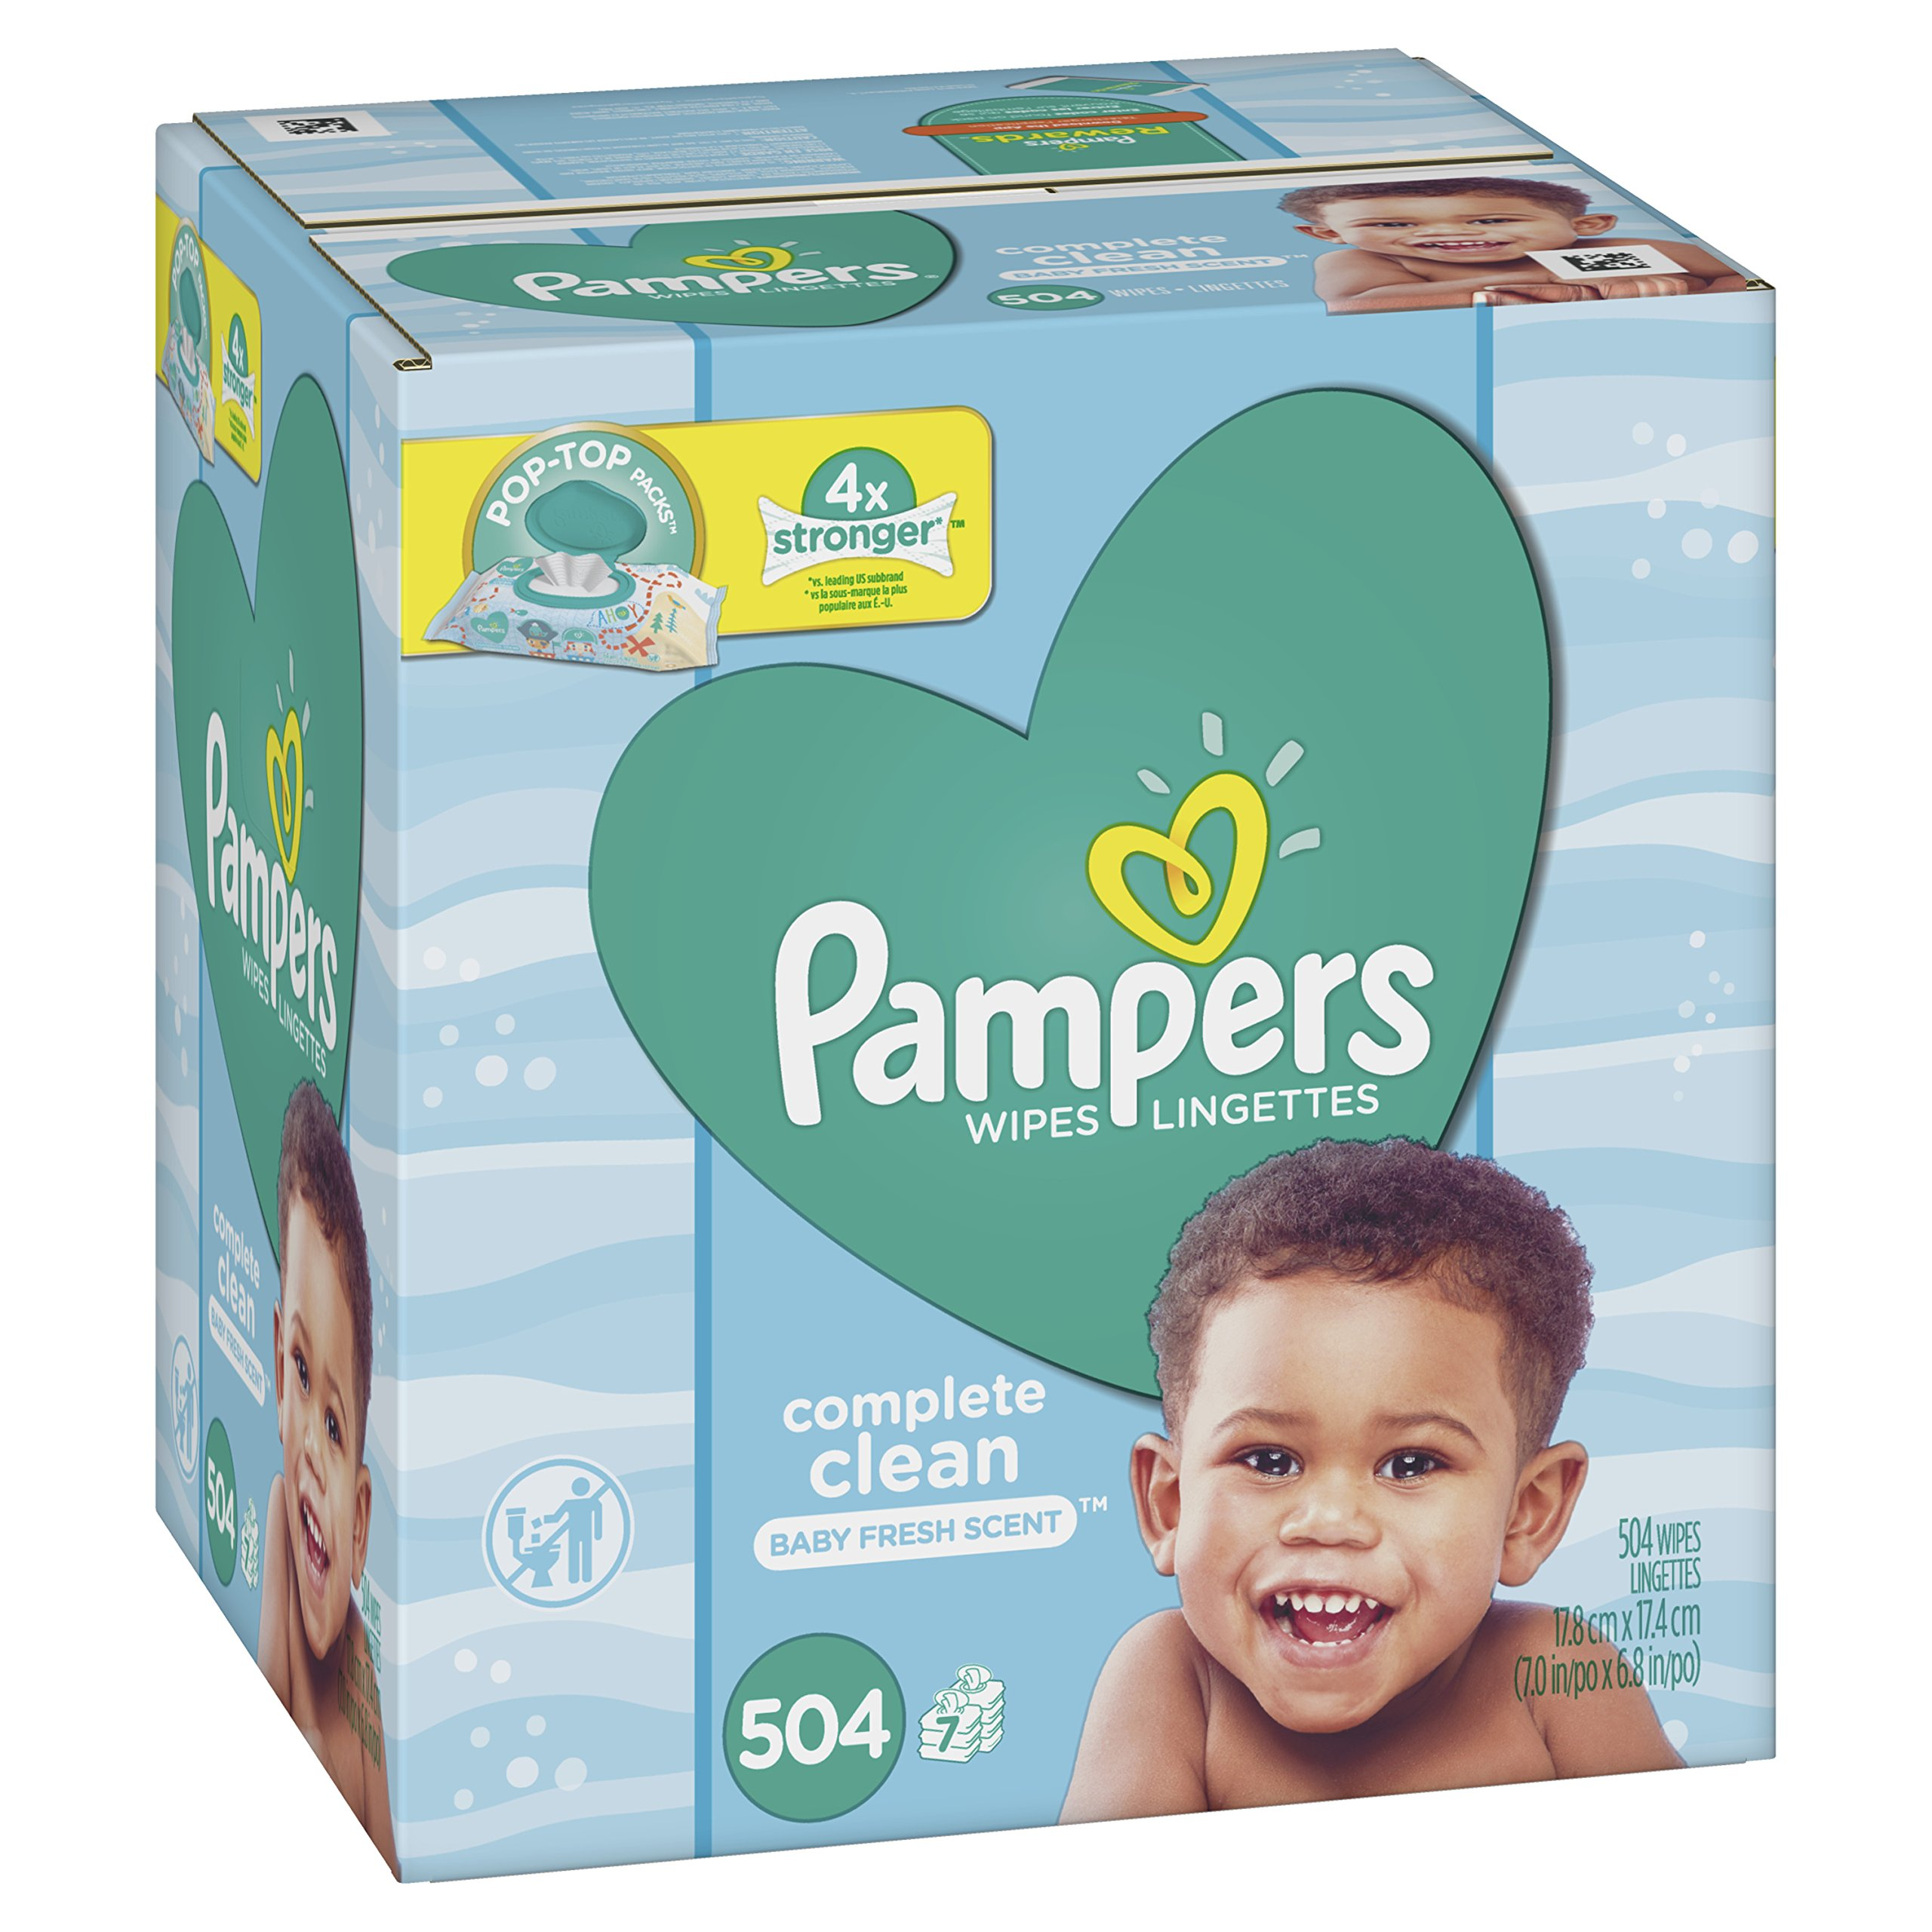 Pampers Baby Wipes Complete Clean Baby Fresh Scent 7X Pop-Top 504 Count